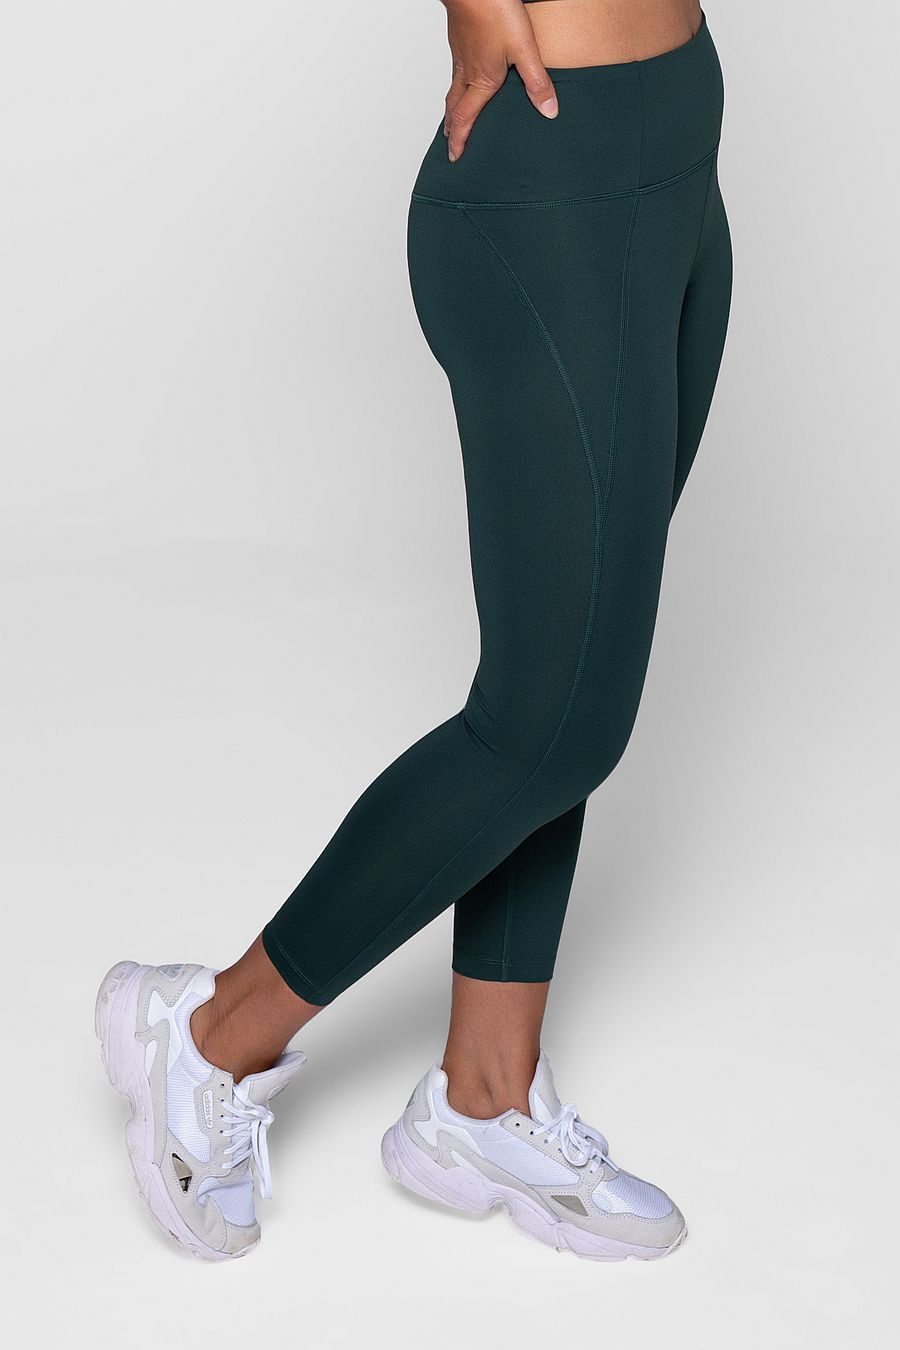 "Girlfriend Collective Moss Compressive Legging (23 3/4"")"